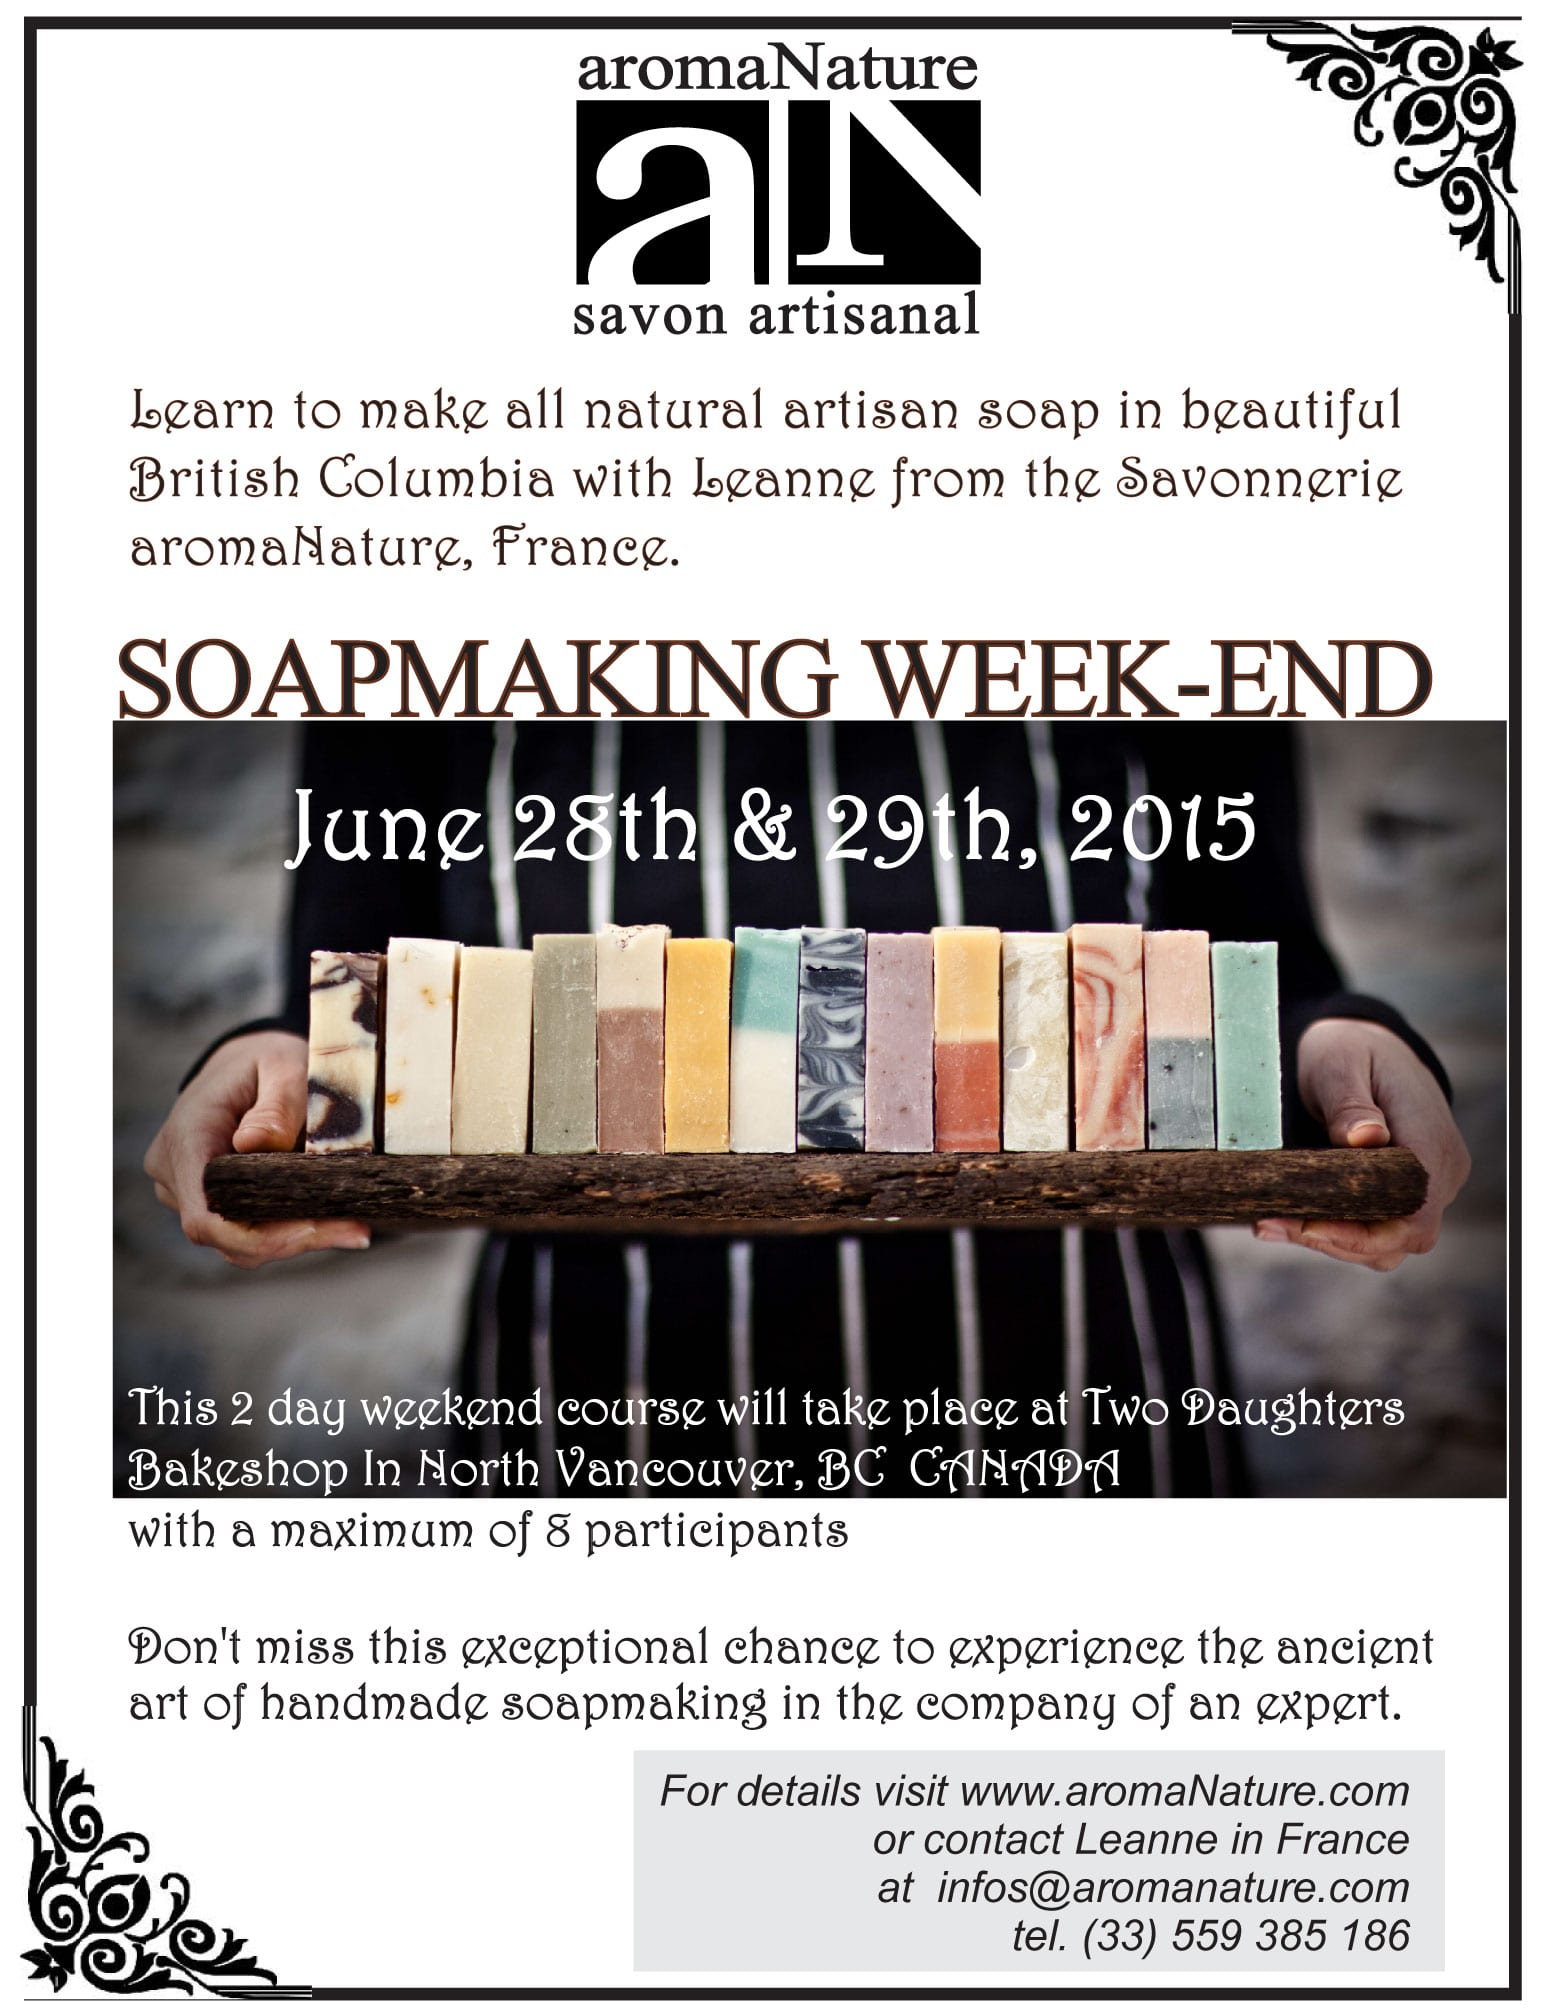 Artisan Soapmaking Course at the Two Daughters Bakeshop